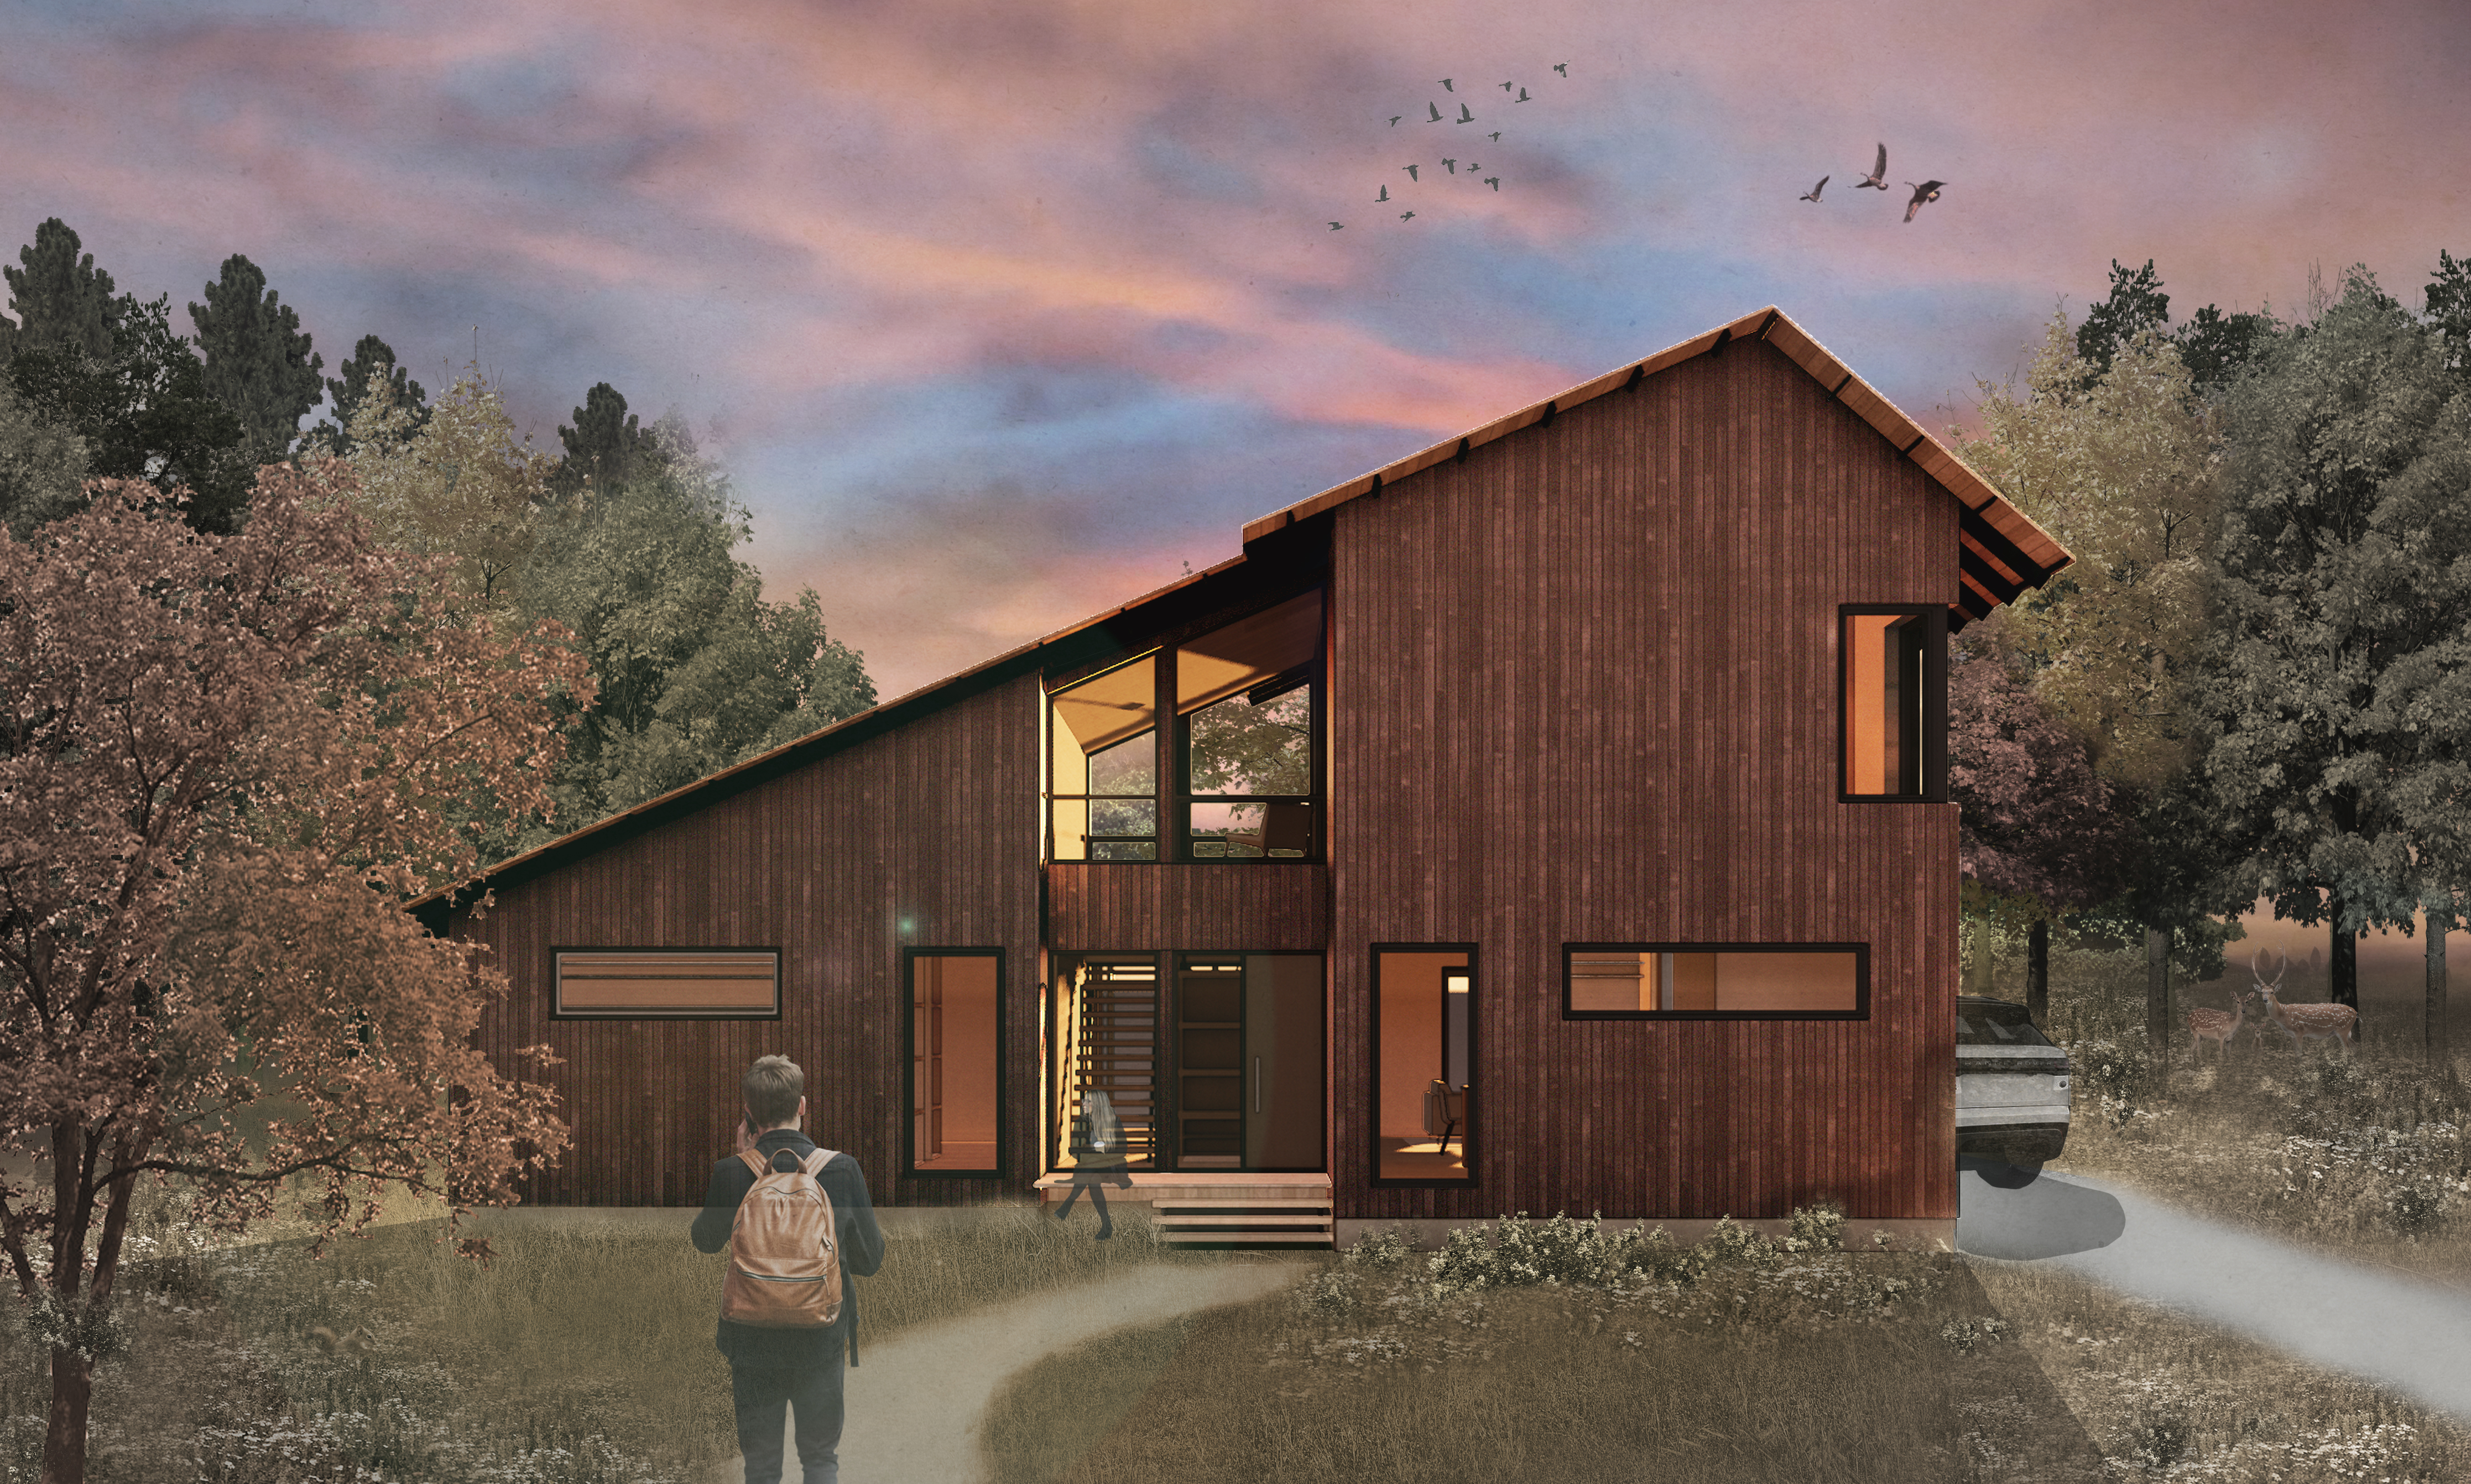 Rendering of timber home with asymmetrical roof.